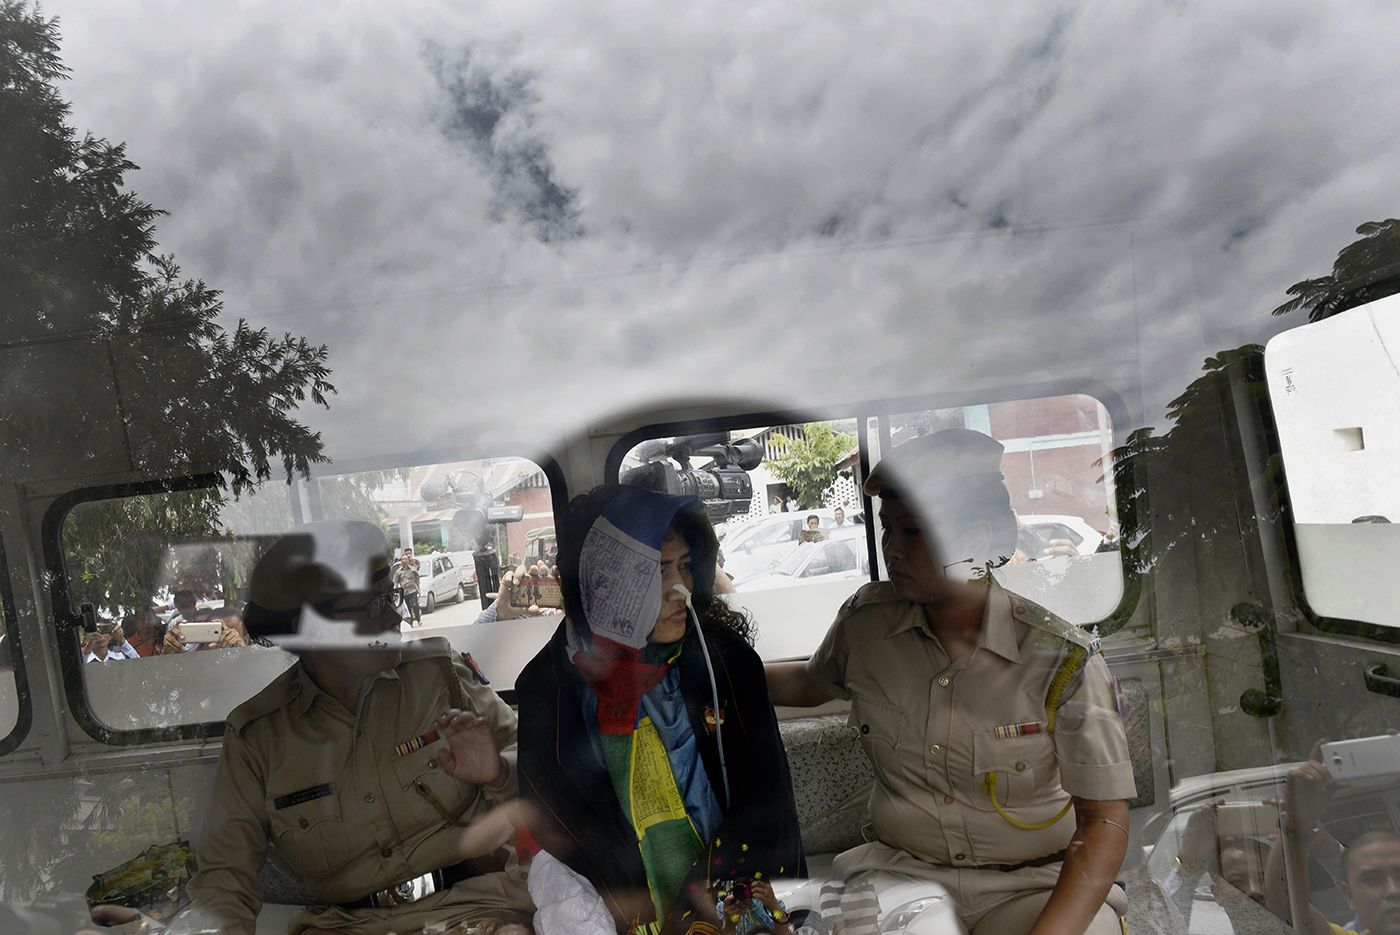 Irom Sharmila arrives for her fortnightly hearing at Cheirap court for her hunger strike against the draconian Armed Forces Special Powers Act (AFSPA) in Imphal, India, August 9, 2016.